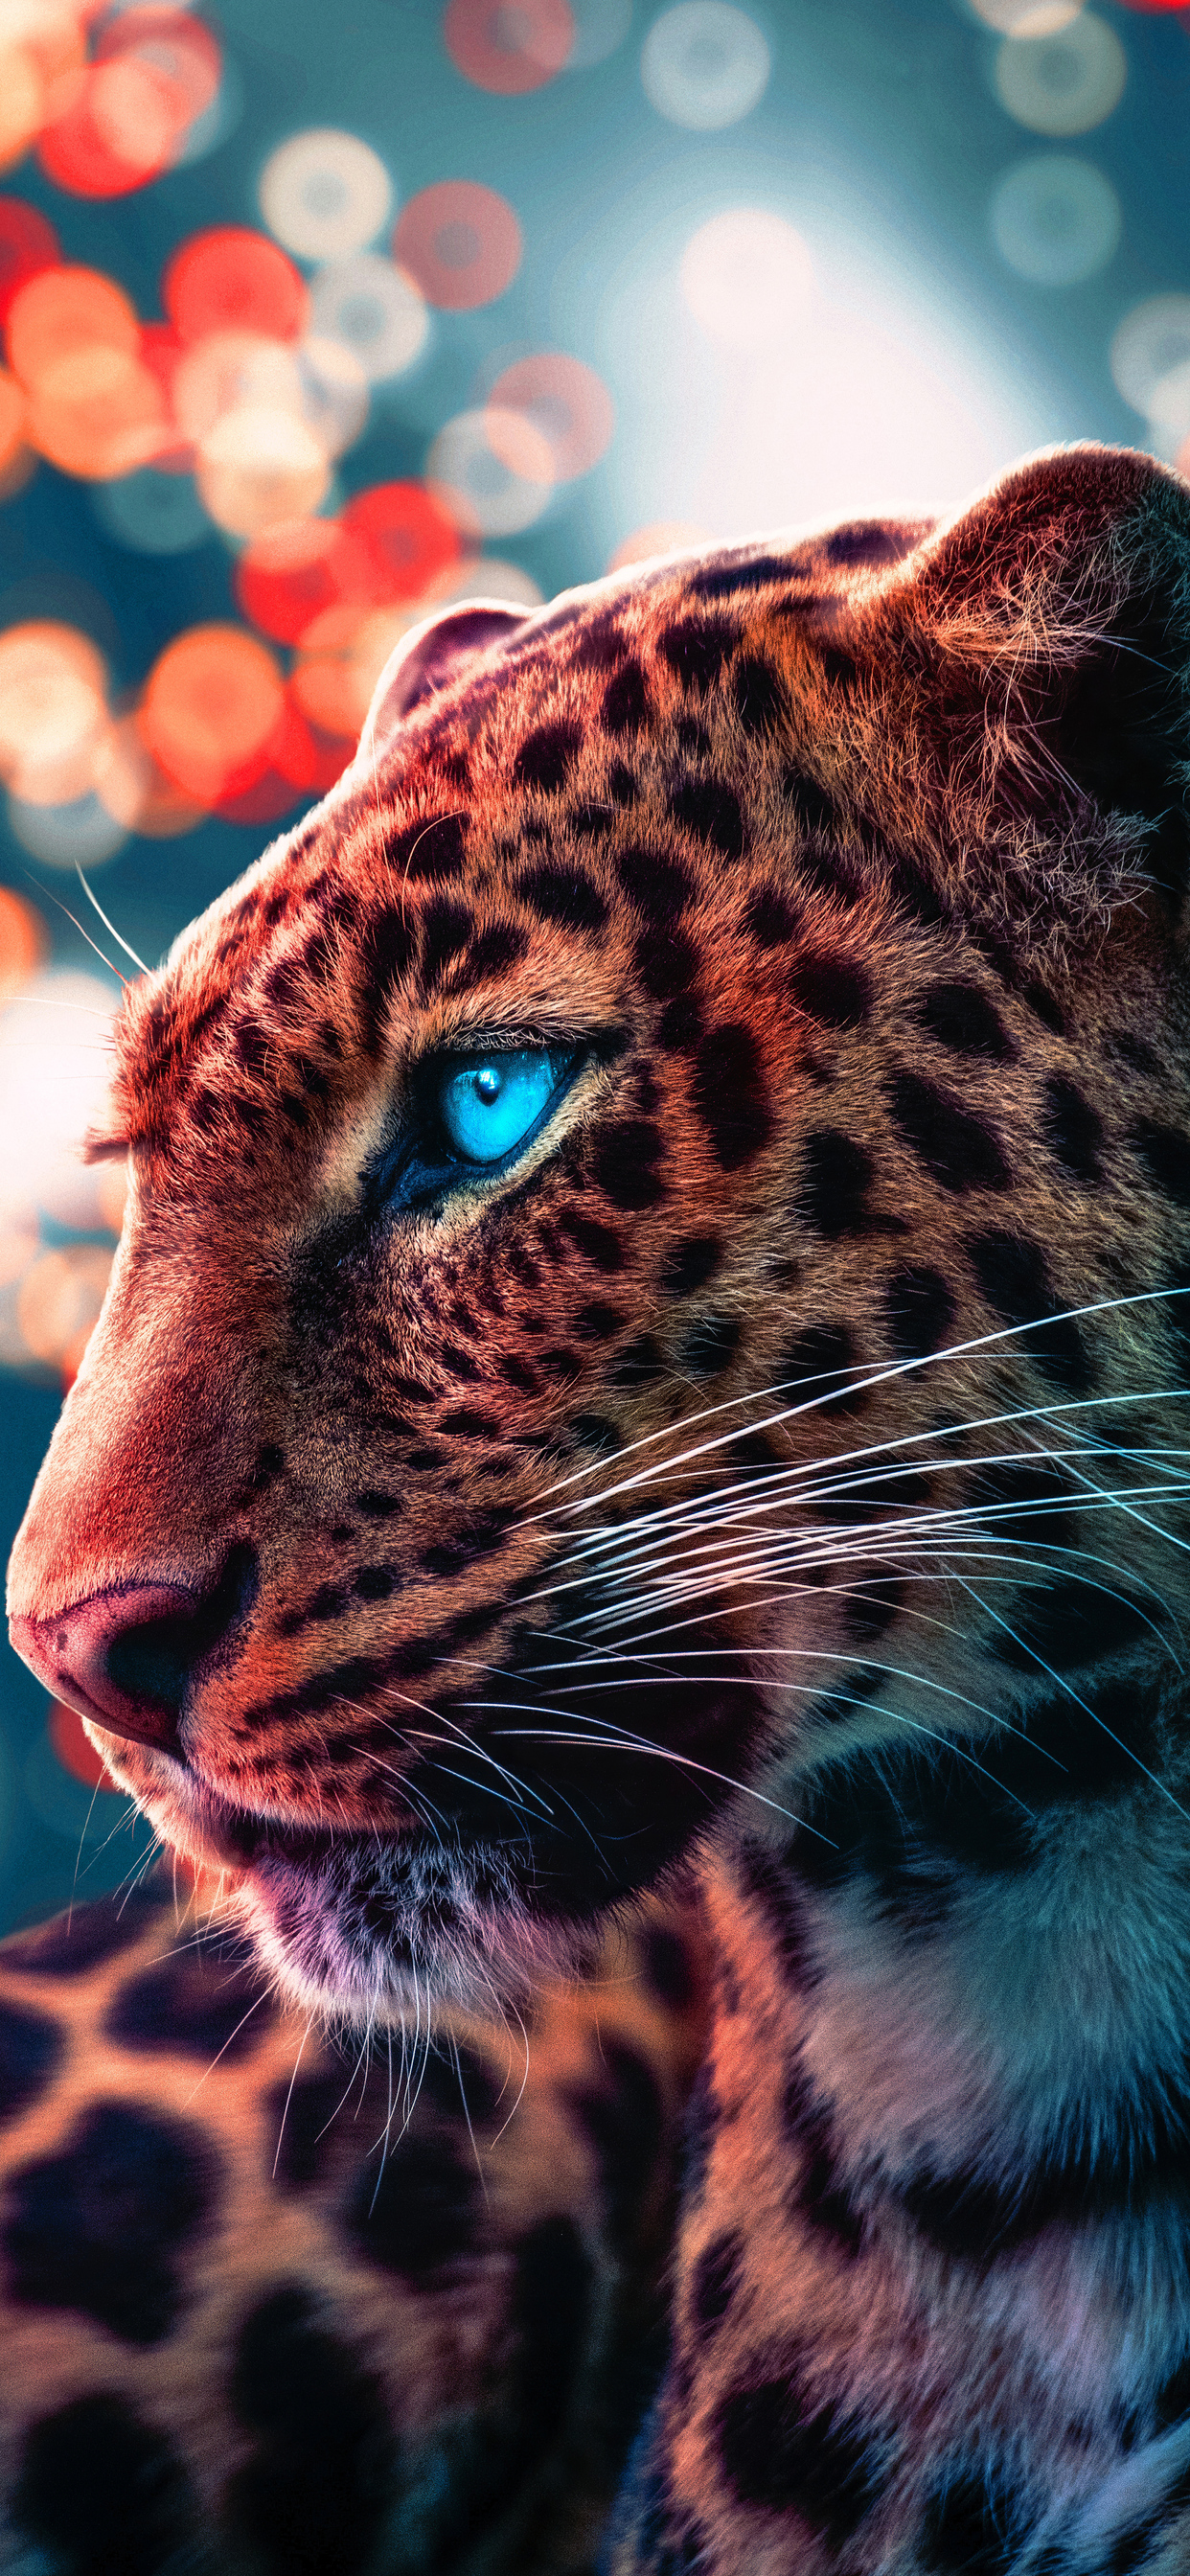 1242x2688 Cheetah Magical Eyes 4k Iphone Xs Max Hd 4k Wallpapers Images Backgrounds Photos And Pictures